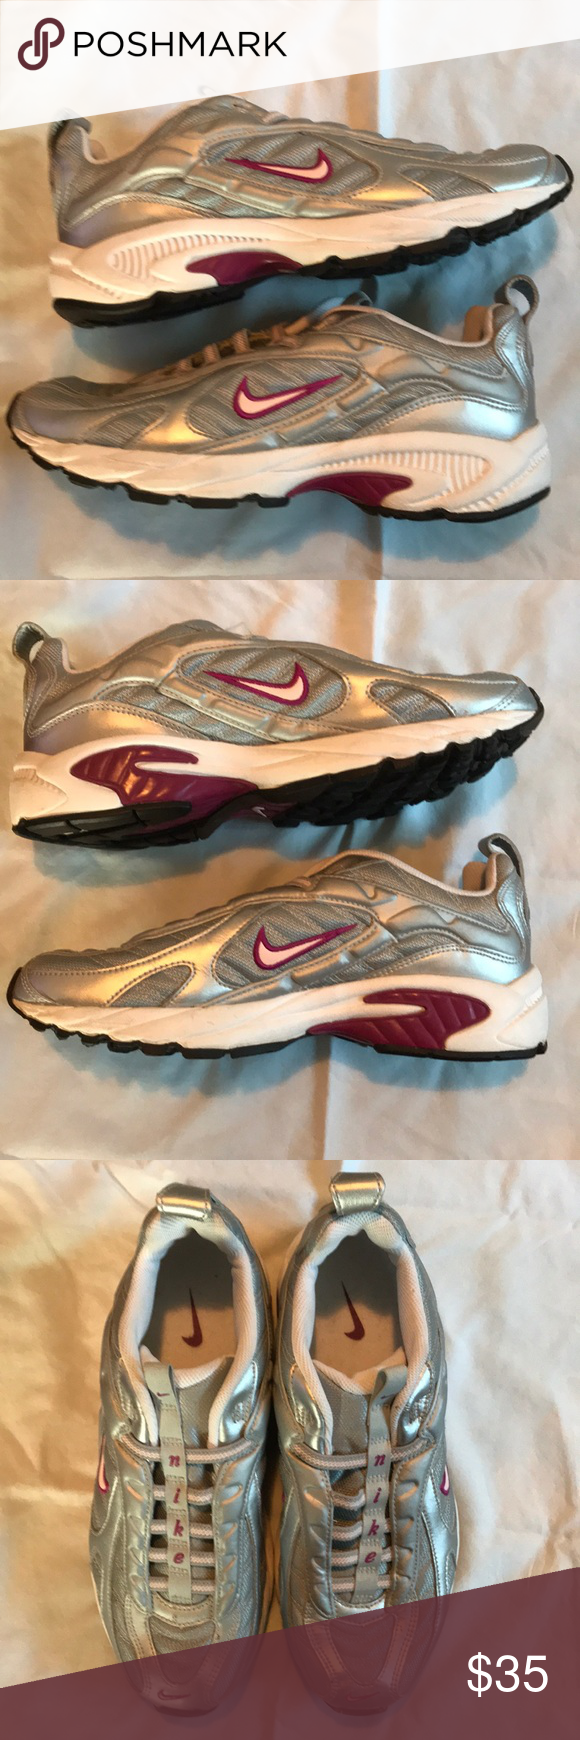 Nike pre laced Woman's Size 10 style 306568-062